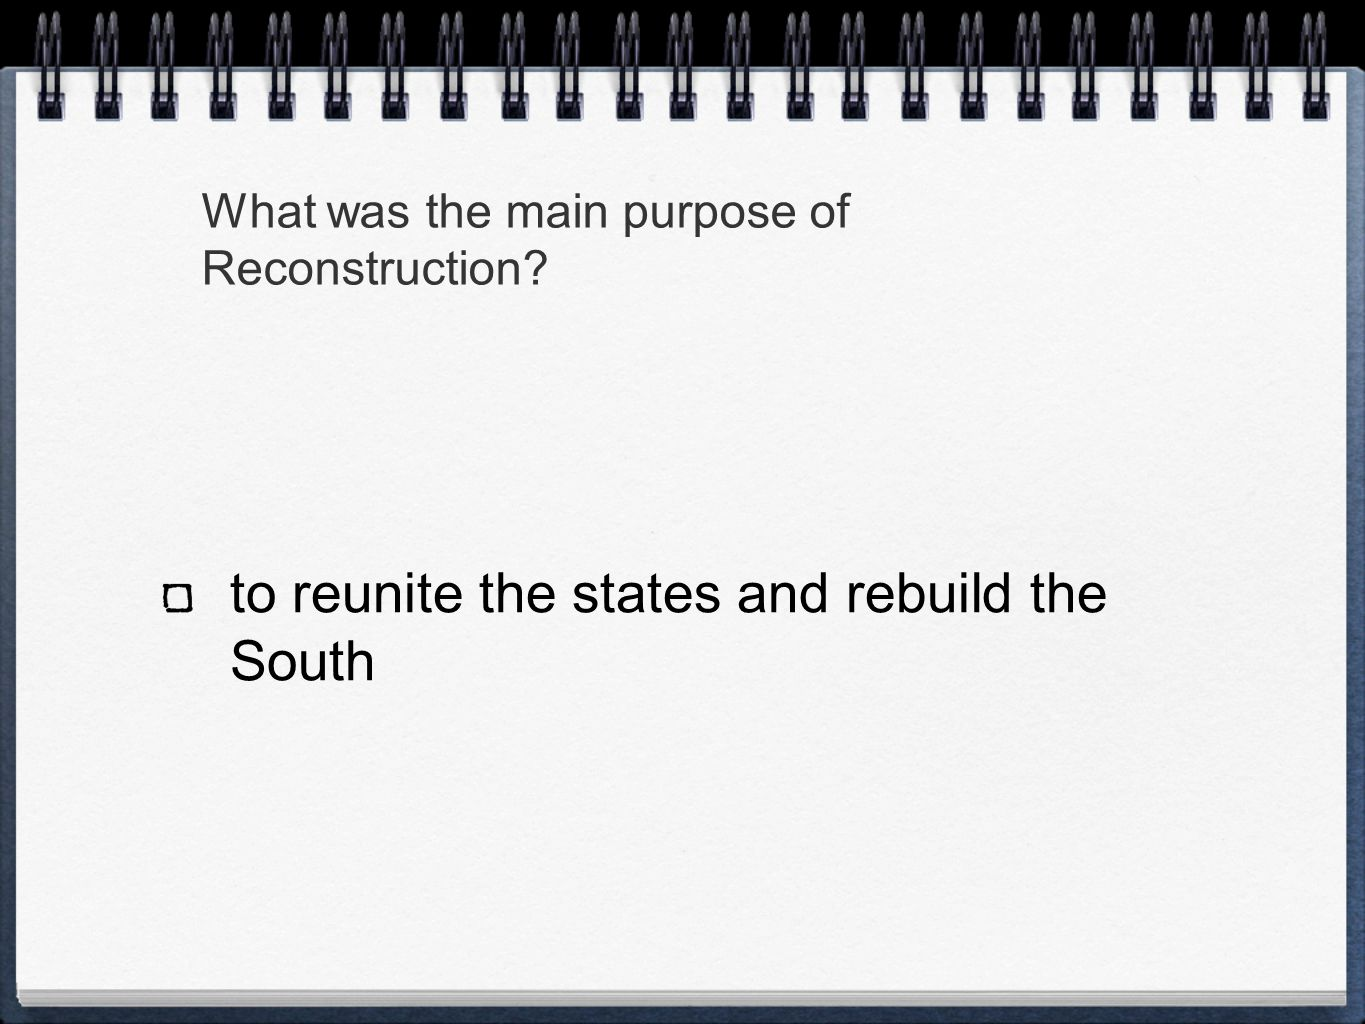 What was the main purpose of Reconstruction to reunite the states and rebuild the South